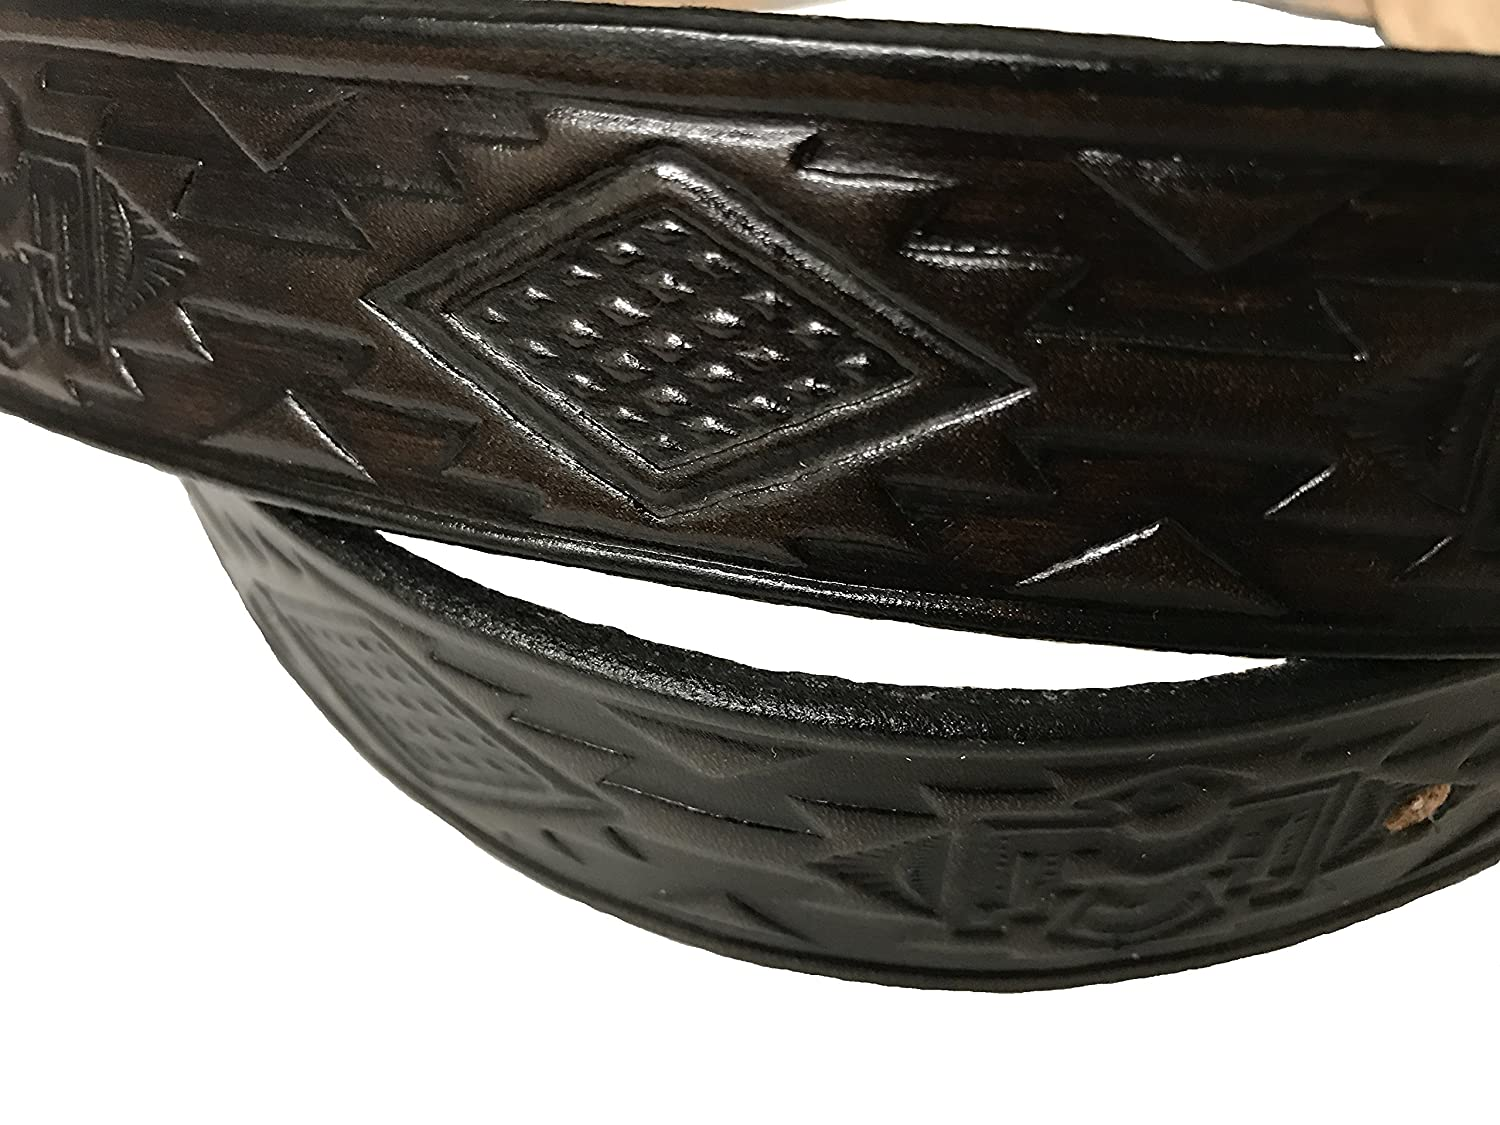 Native Indian Design Handmade Mens Leather Belt Western Work Casual 1.5 Wide Color Cocoa Brown